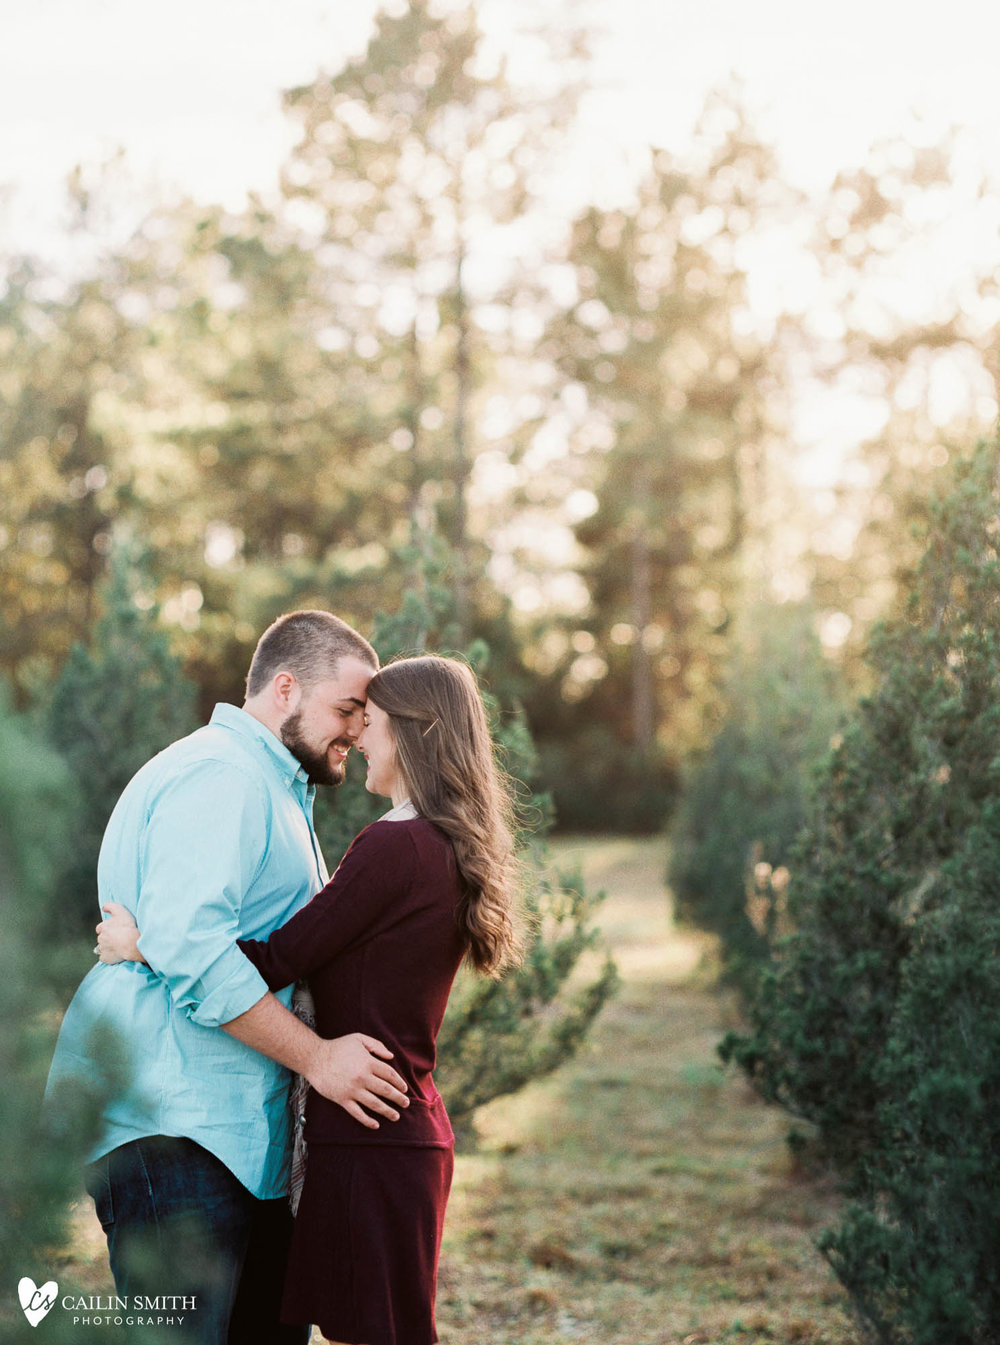 Elyssa_Caleb_Tree_Farm_Engagement_Photography_Jacksonville_010.jpg